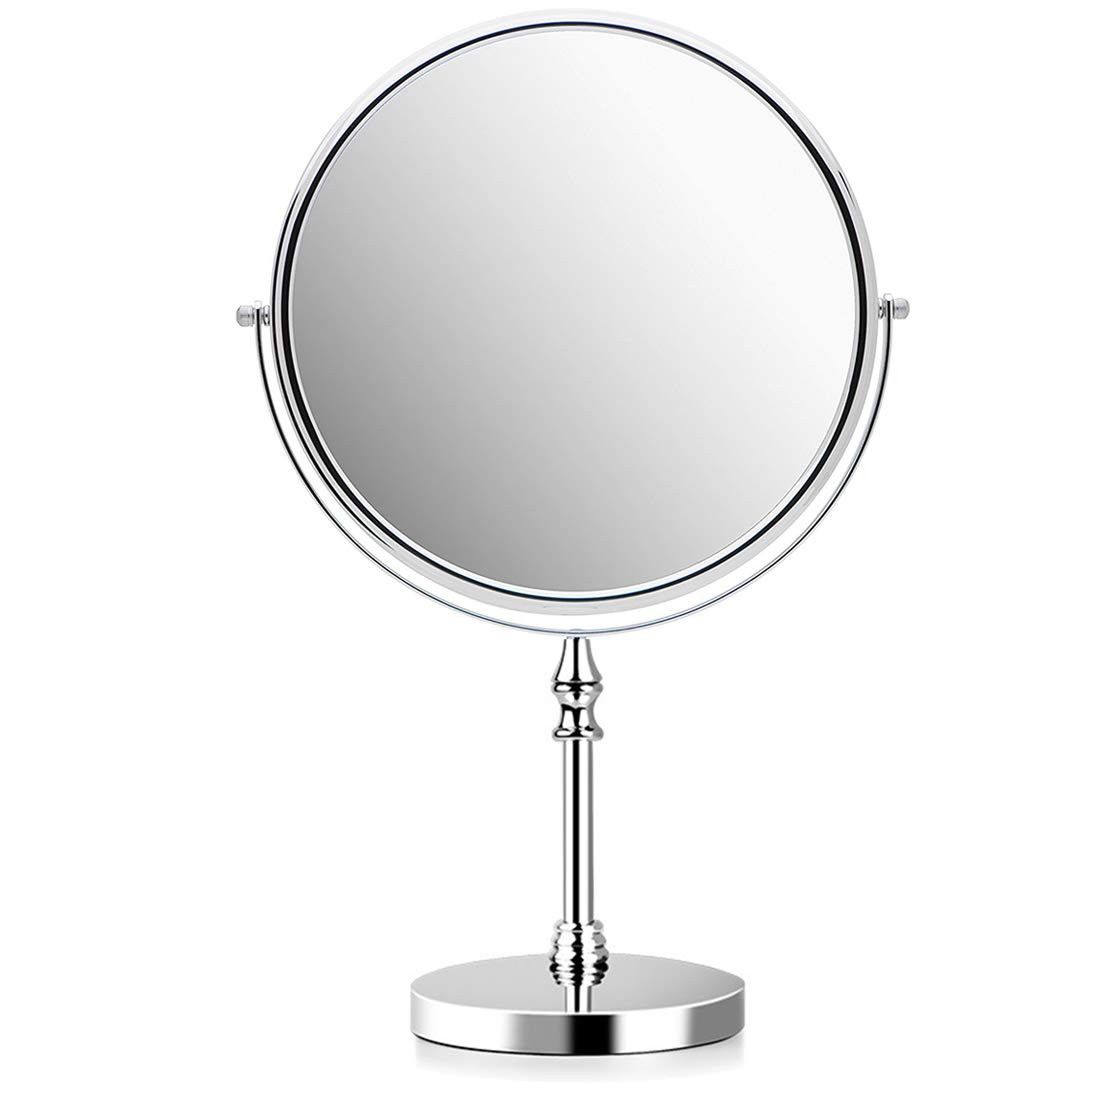 8 Inch Makeup Mirror 10X Magnifying Bathroom Mirrors 360 Dregree Free Standing,Dual Sided Vanity Mirror for Makeup Shaving,Round